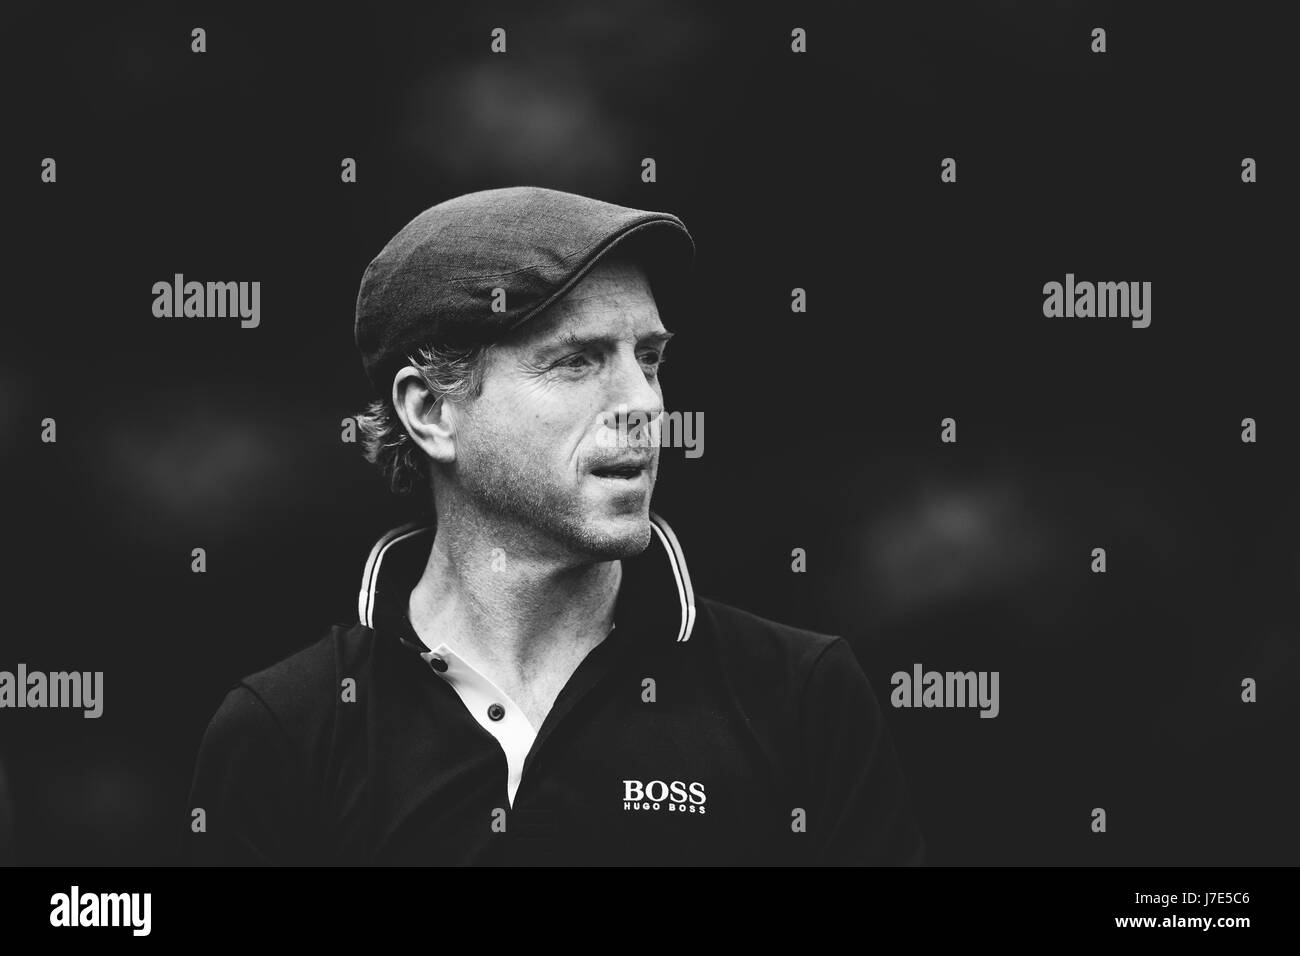 Damian Lewis competes in the celebrity Pro-Am competition ahead of the BMW PGA Championship at Wentworth on May, - Stock Image